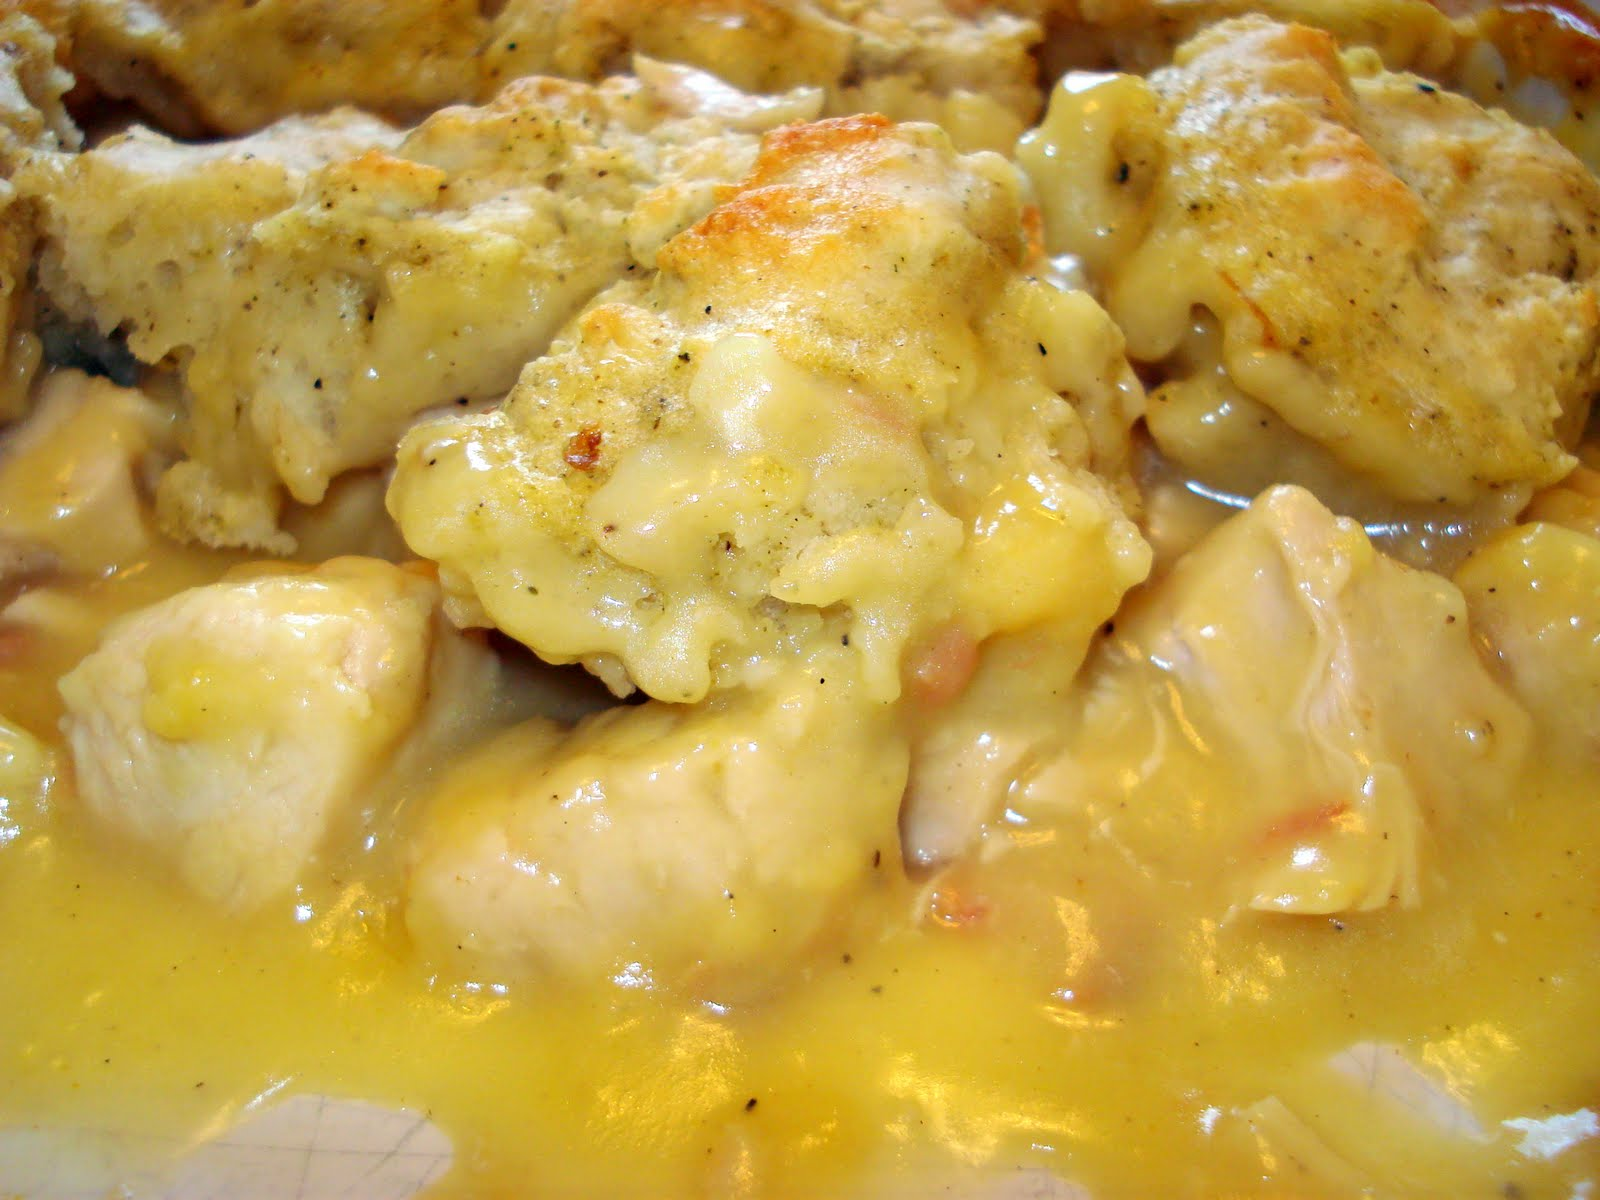 What we've got cookin': Chicken & Dumplings